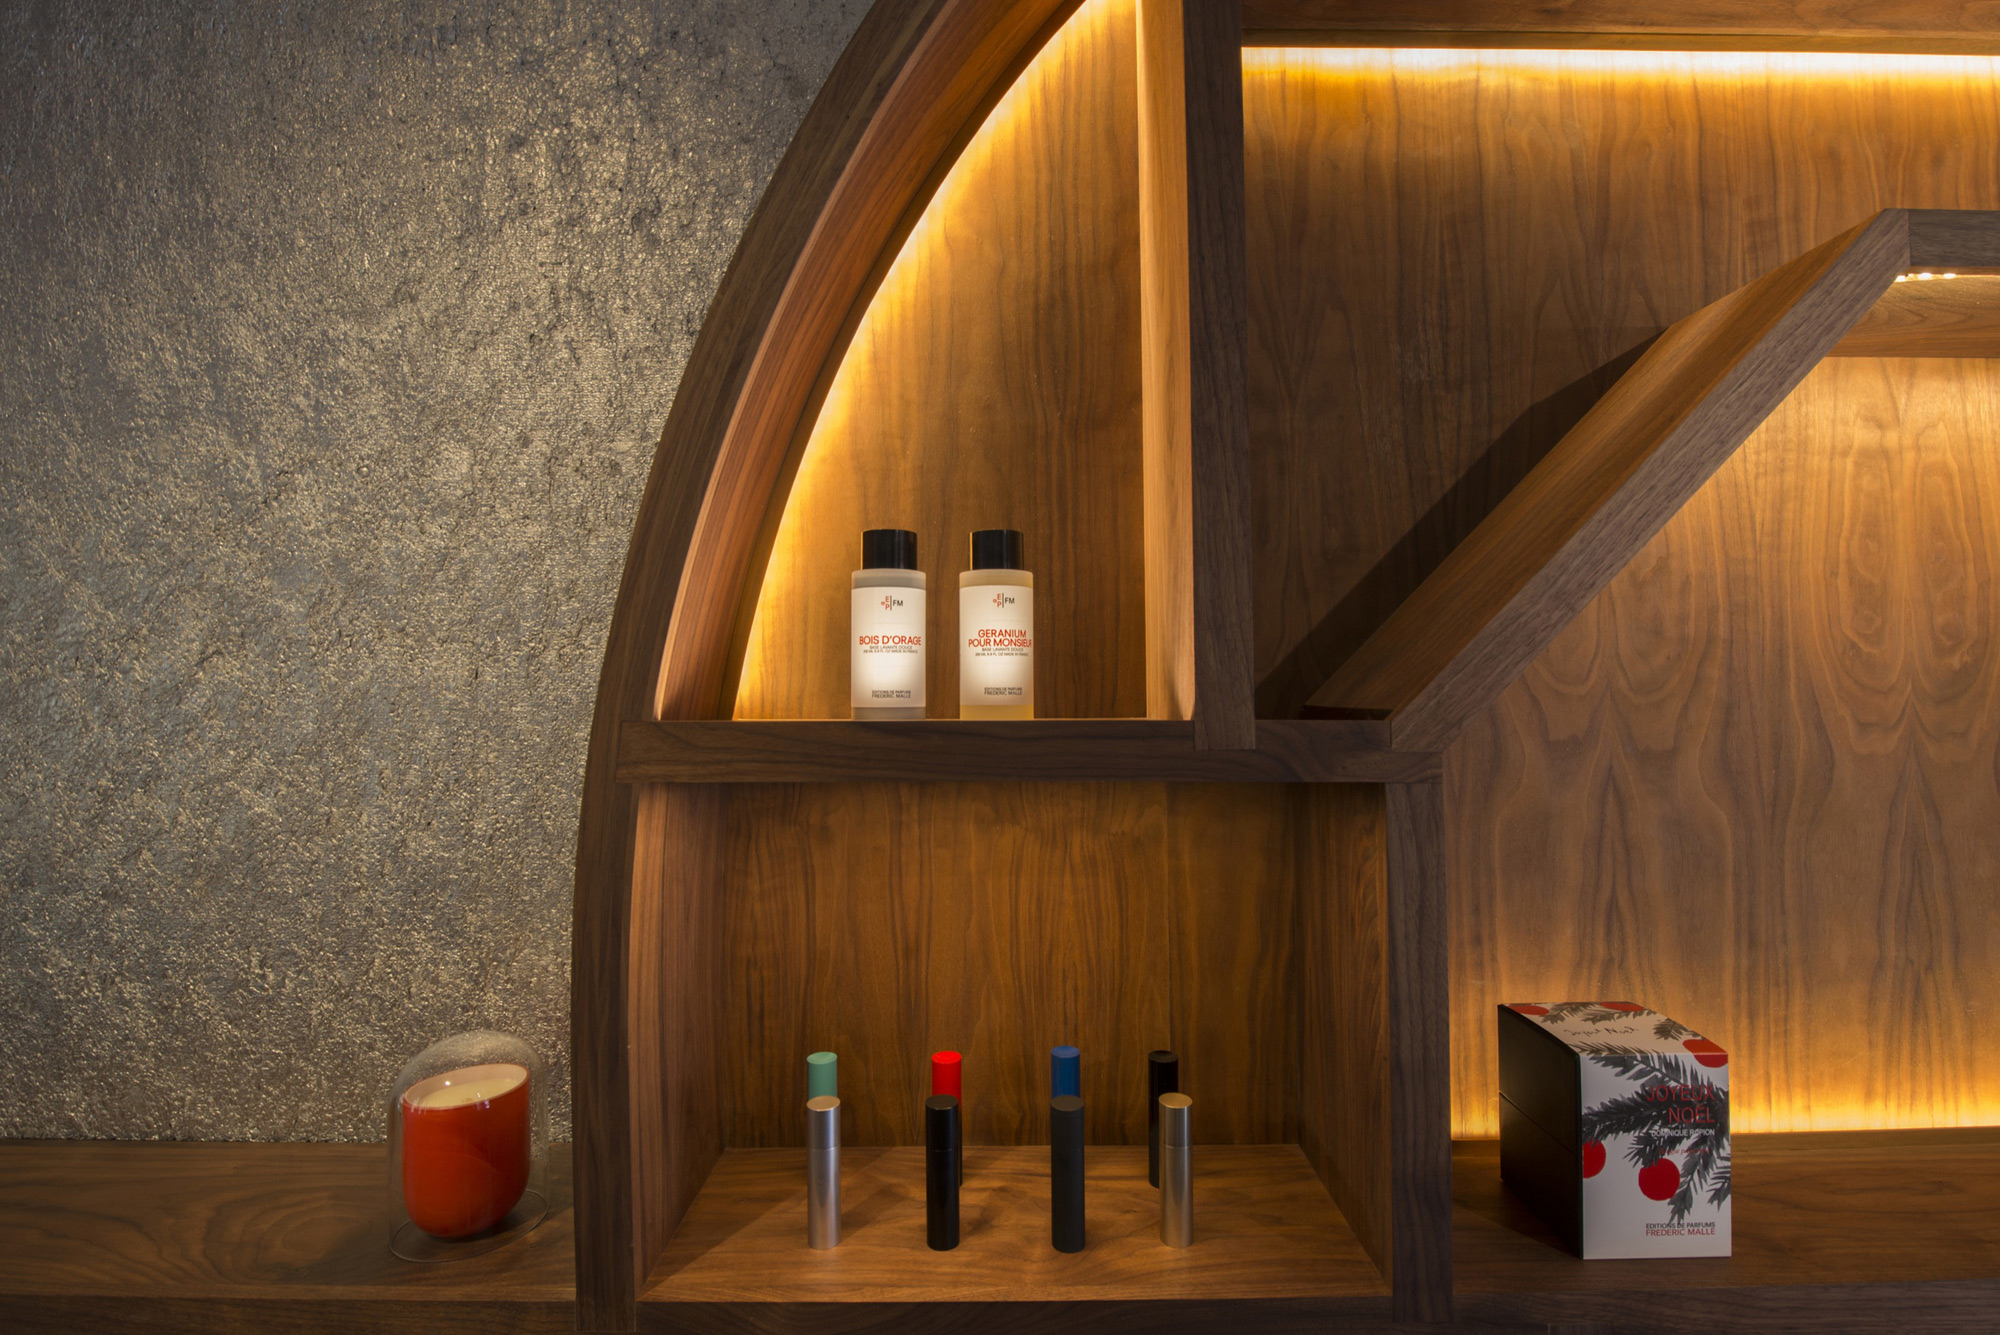 Frederic Malle / Steven Holl Architects (16)